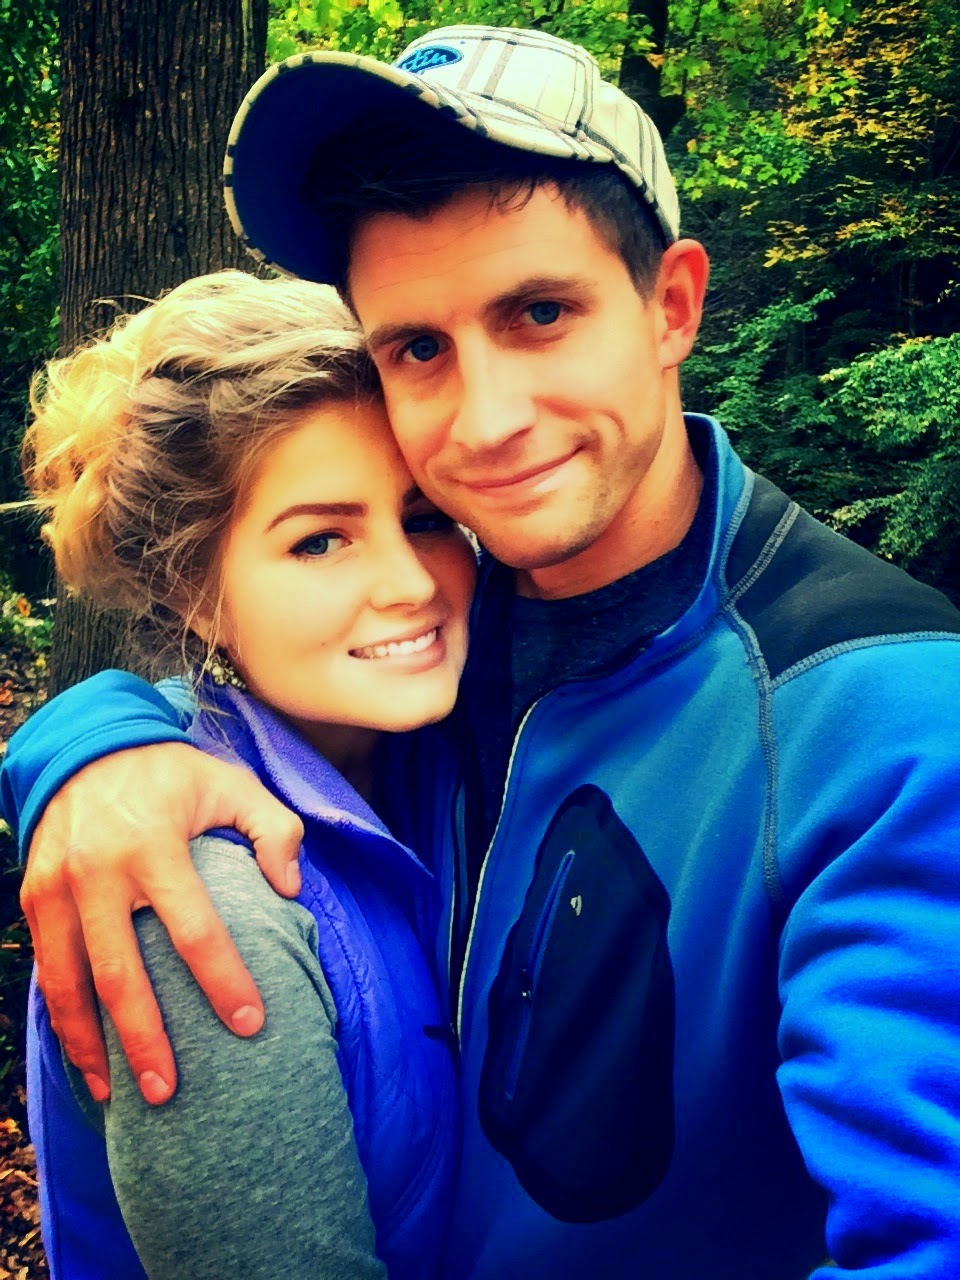 Bringing Up Bates Erin Paine And Husband Chad On Their Miscarriage